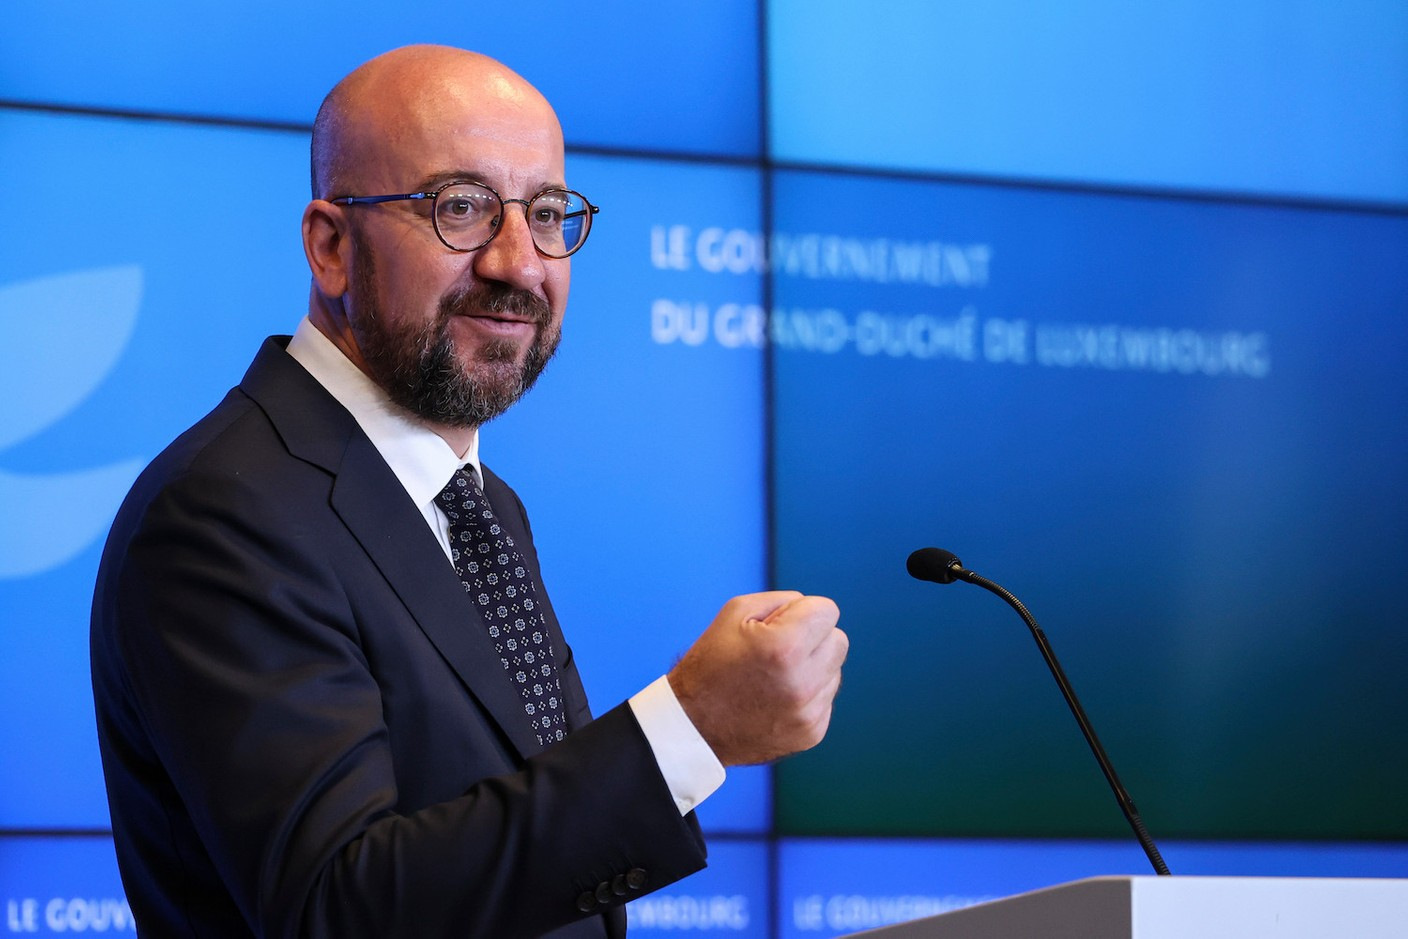 EU Council president Charles Michel during the press conference on 16 September Photo: European Union